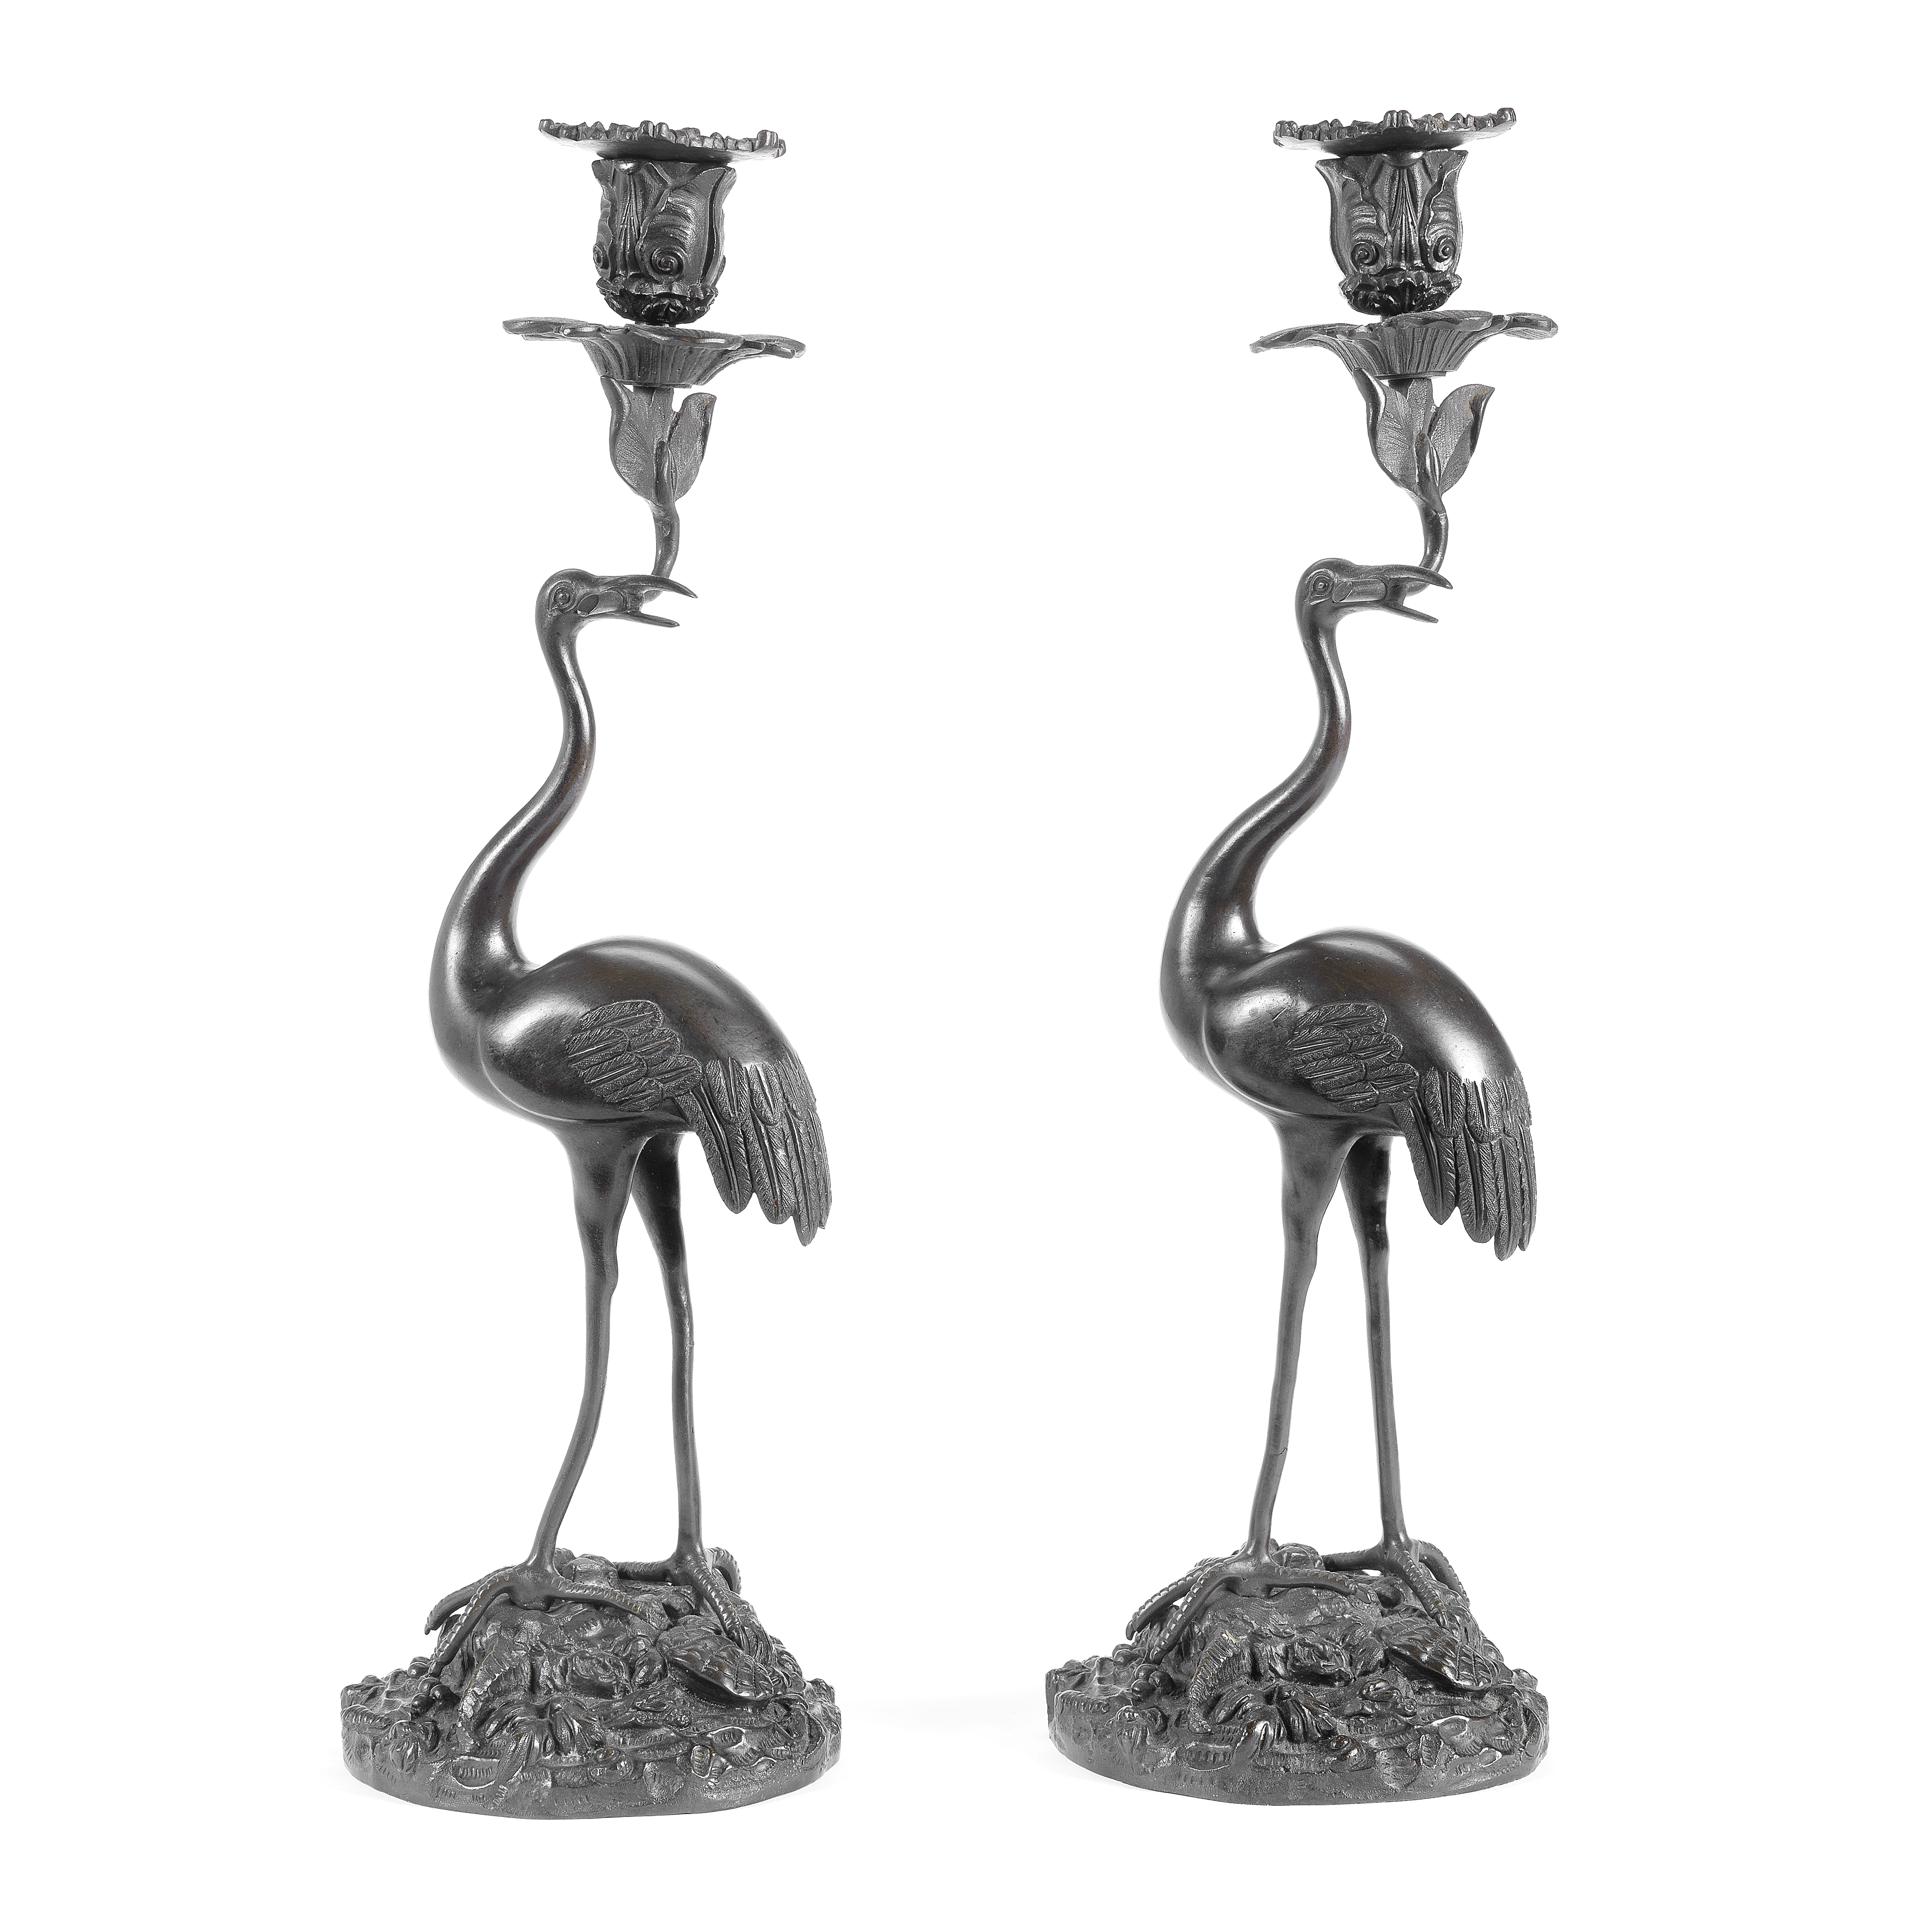 A pair of mid 19th century patinated bronze crane candlesticks in the manner of Thomas Abbott (2)